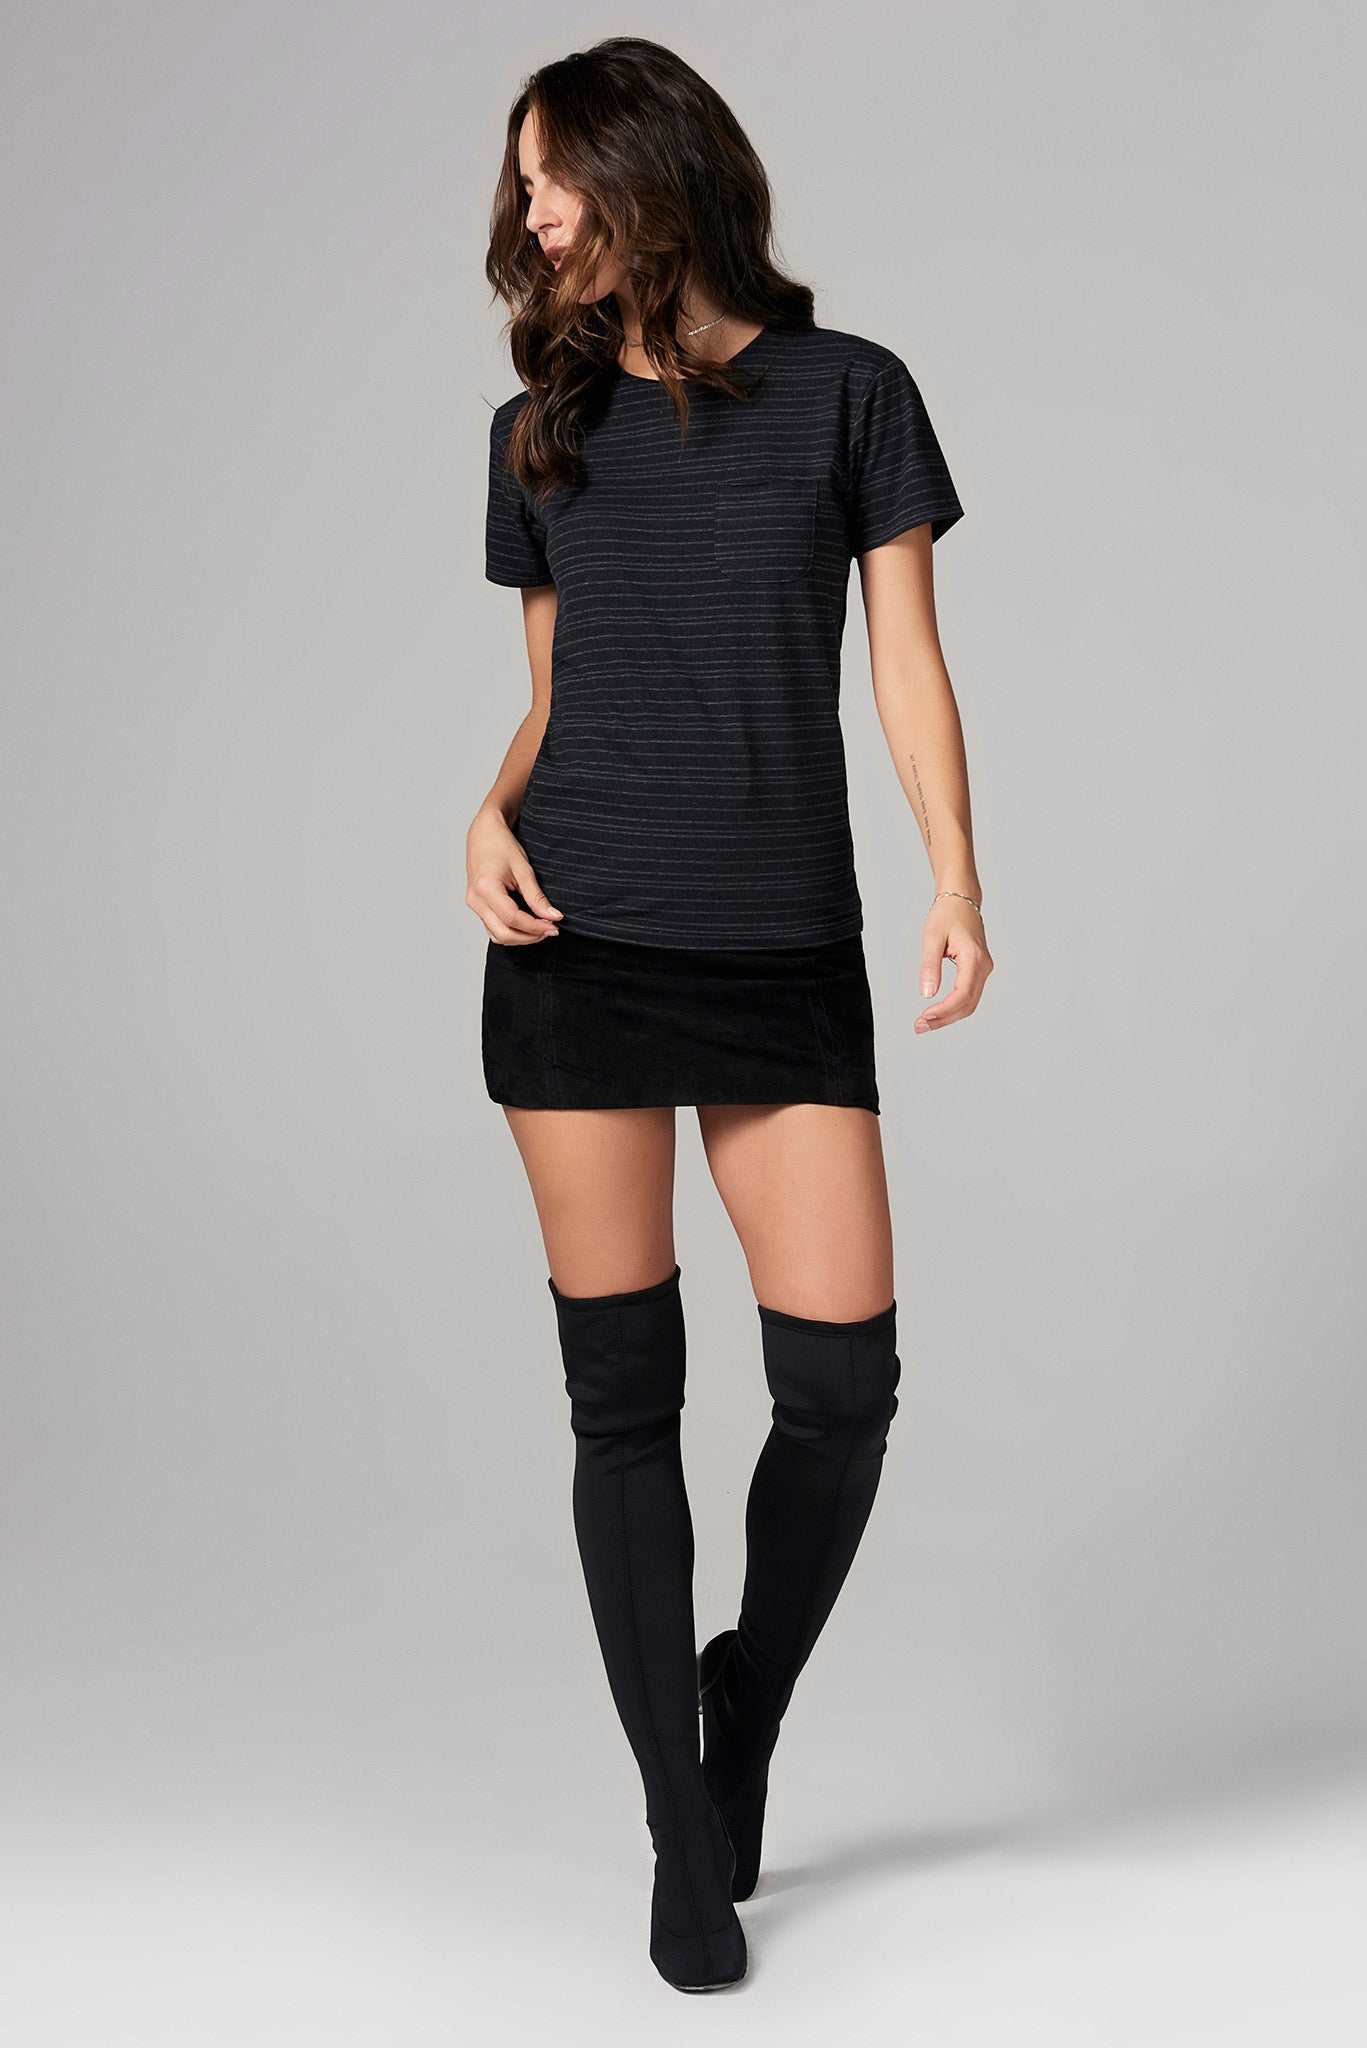 WOMEN'S POCKET SAILOR CREW NECK TEE - WAVY STRIPE